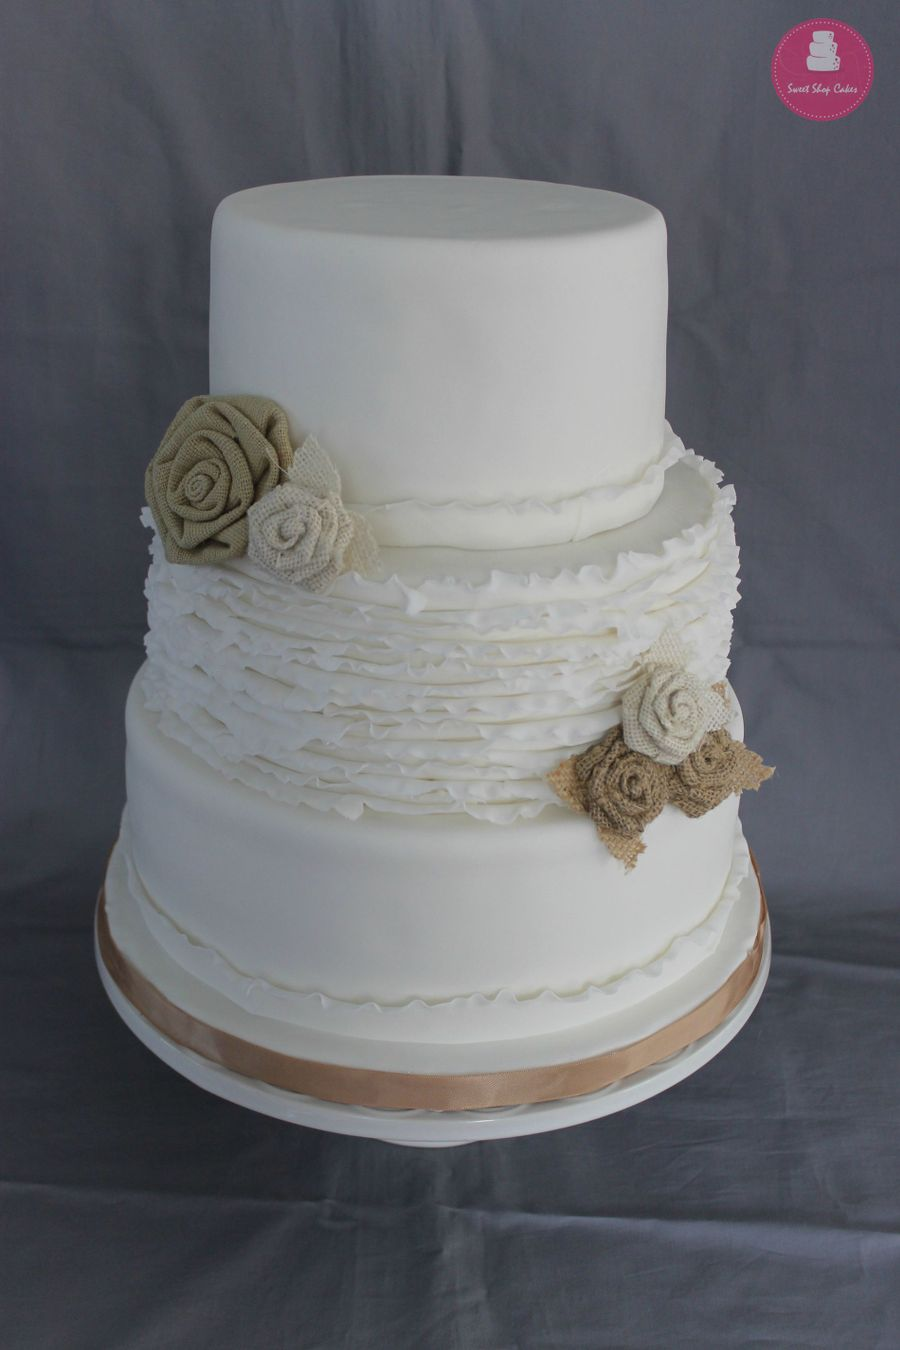 Rustic Wedding Cake And Cupcakes - CakeCentral.com